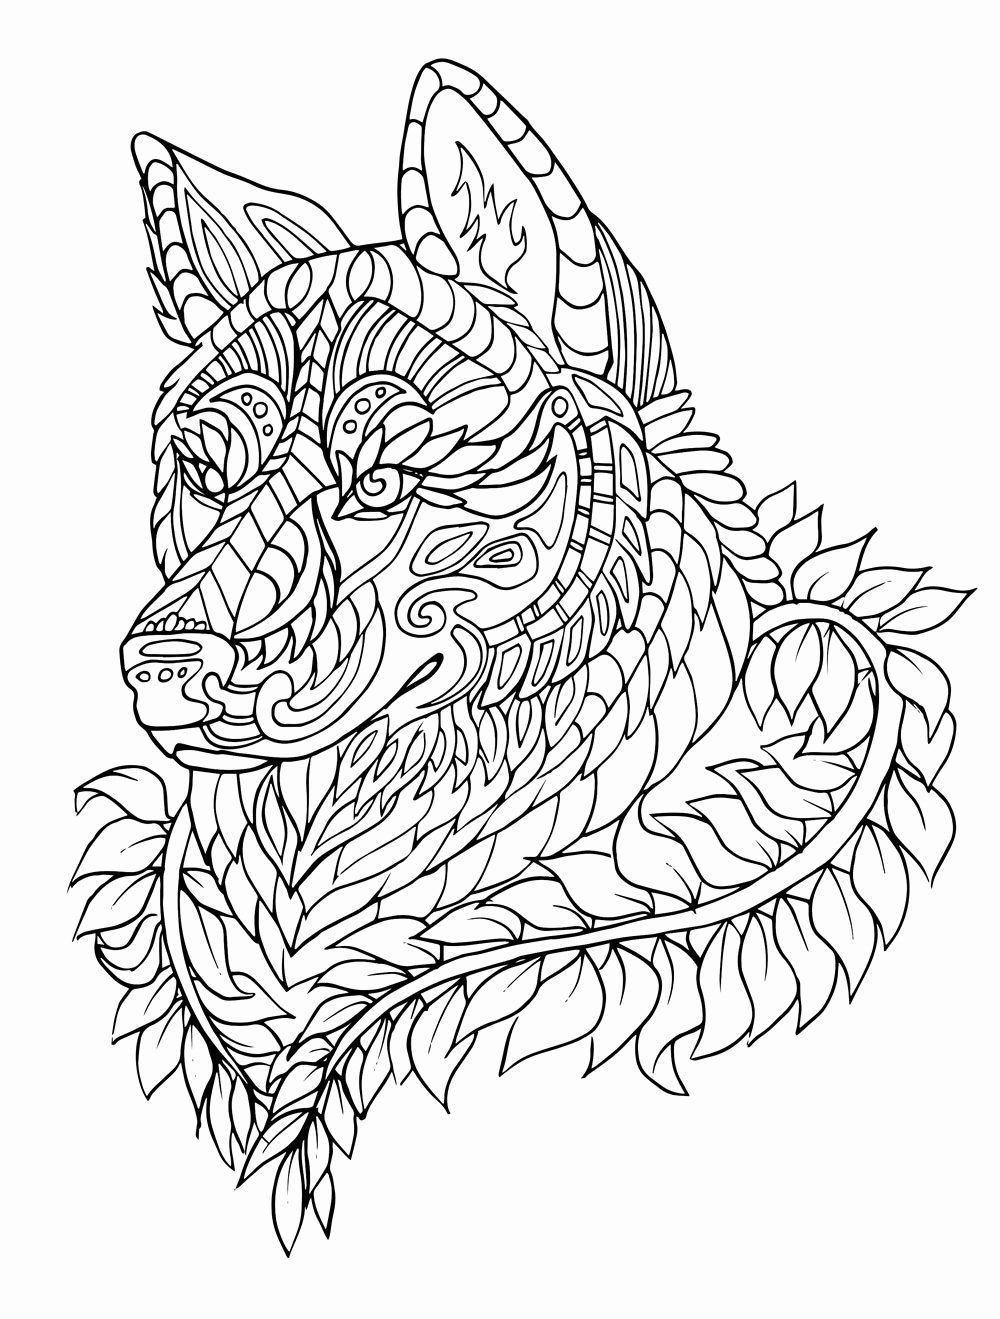 Nature Coloring Pages For Adults Best Of Www Coloring Pages Adults At Getdrawings Animal Coloring Pages Mandala Coloring Pages Coloring Pages